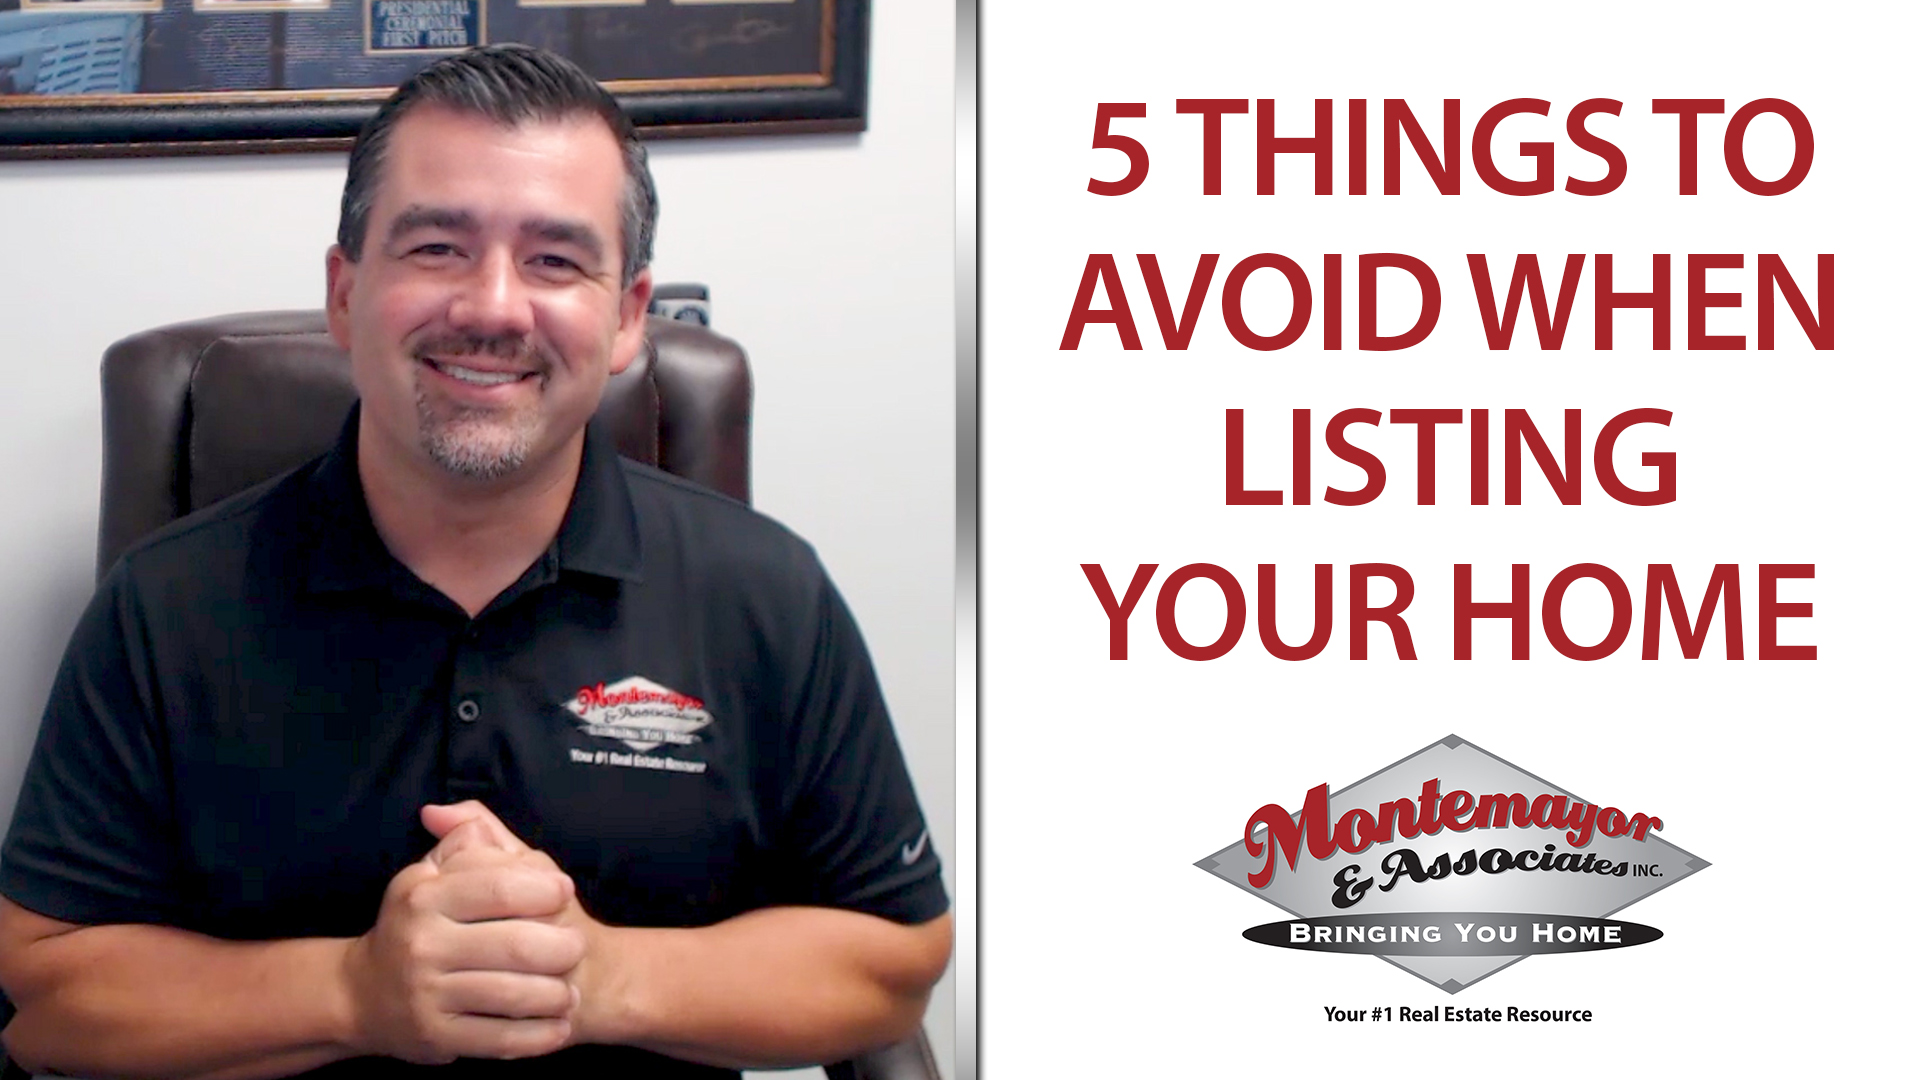 What Should You Avoid Doing If You're Listing Your Home?